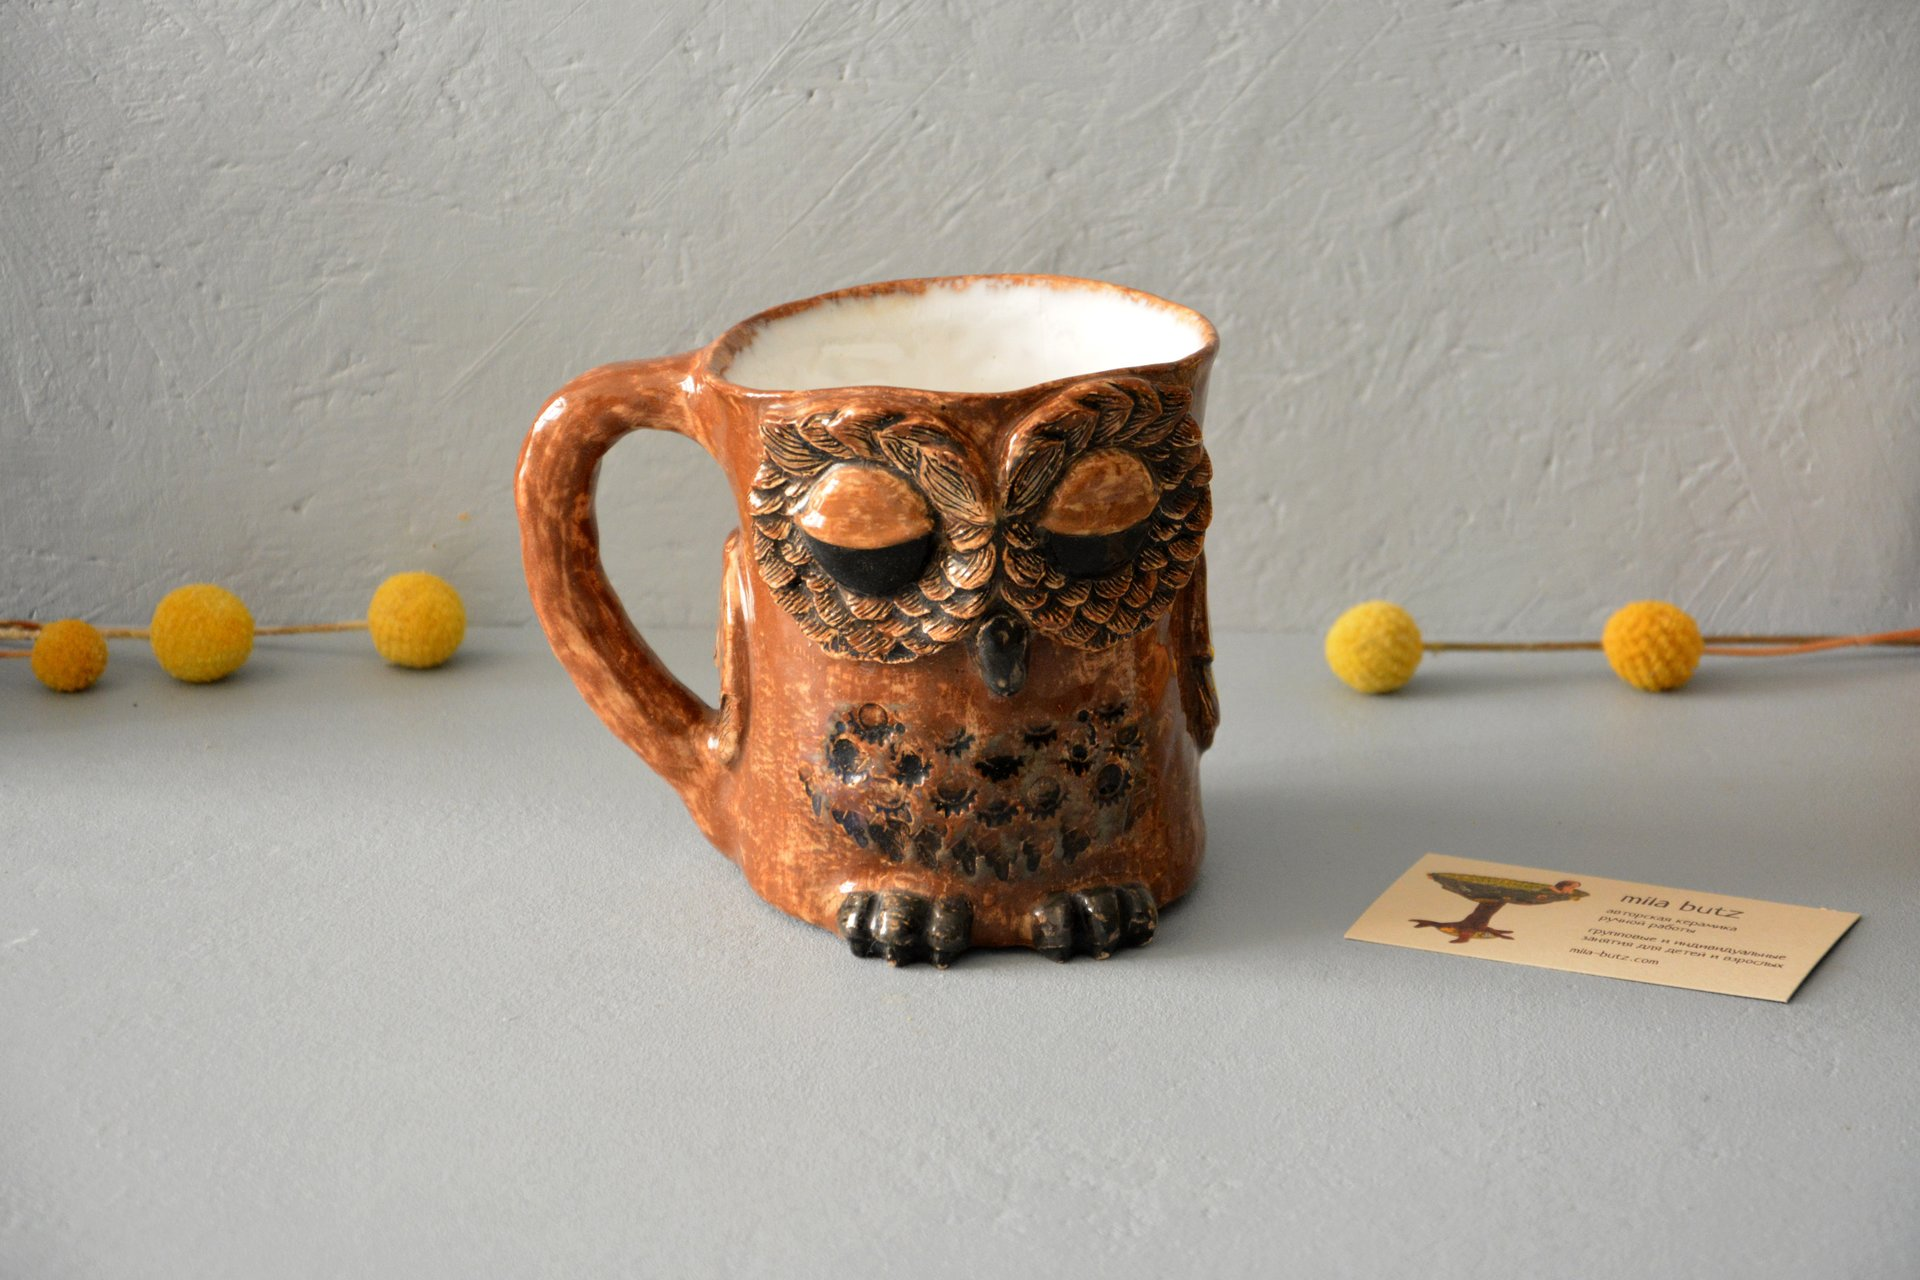 Owl is a large cup, аmount - 0.5 l,  height - 14 cm, diameter - 10 cm, photo 1 of 6.